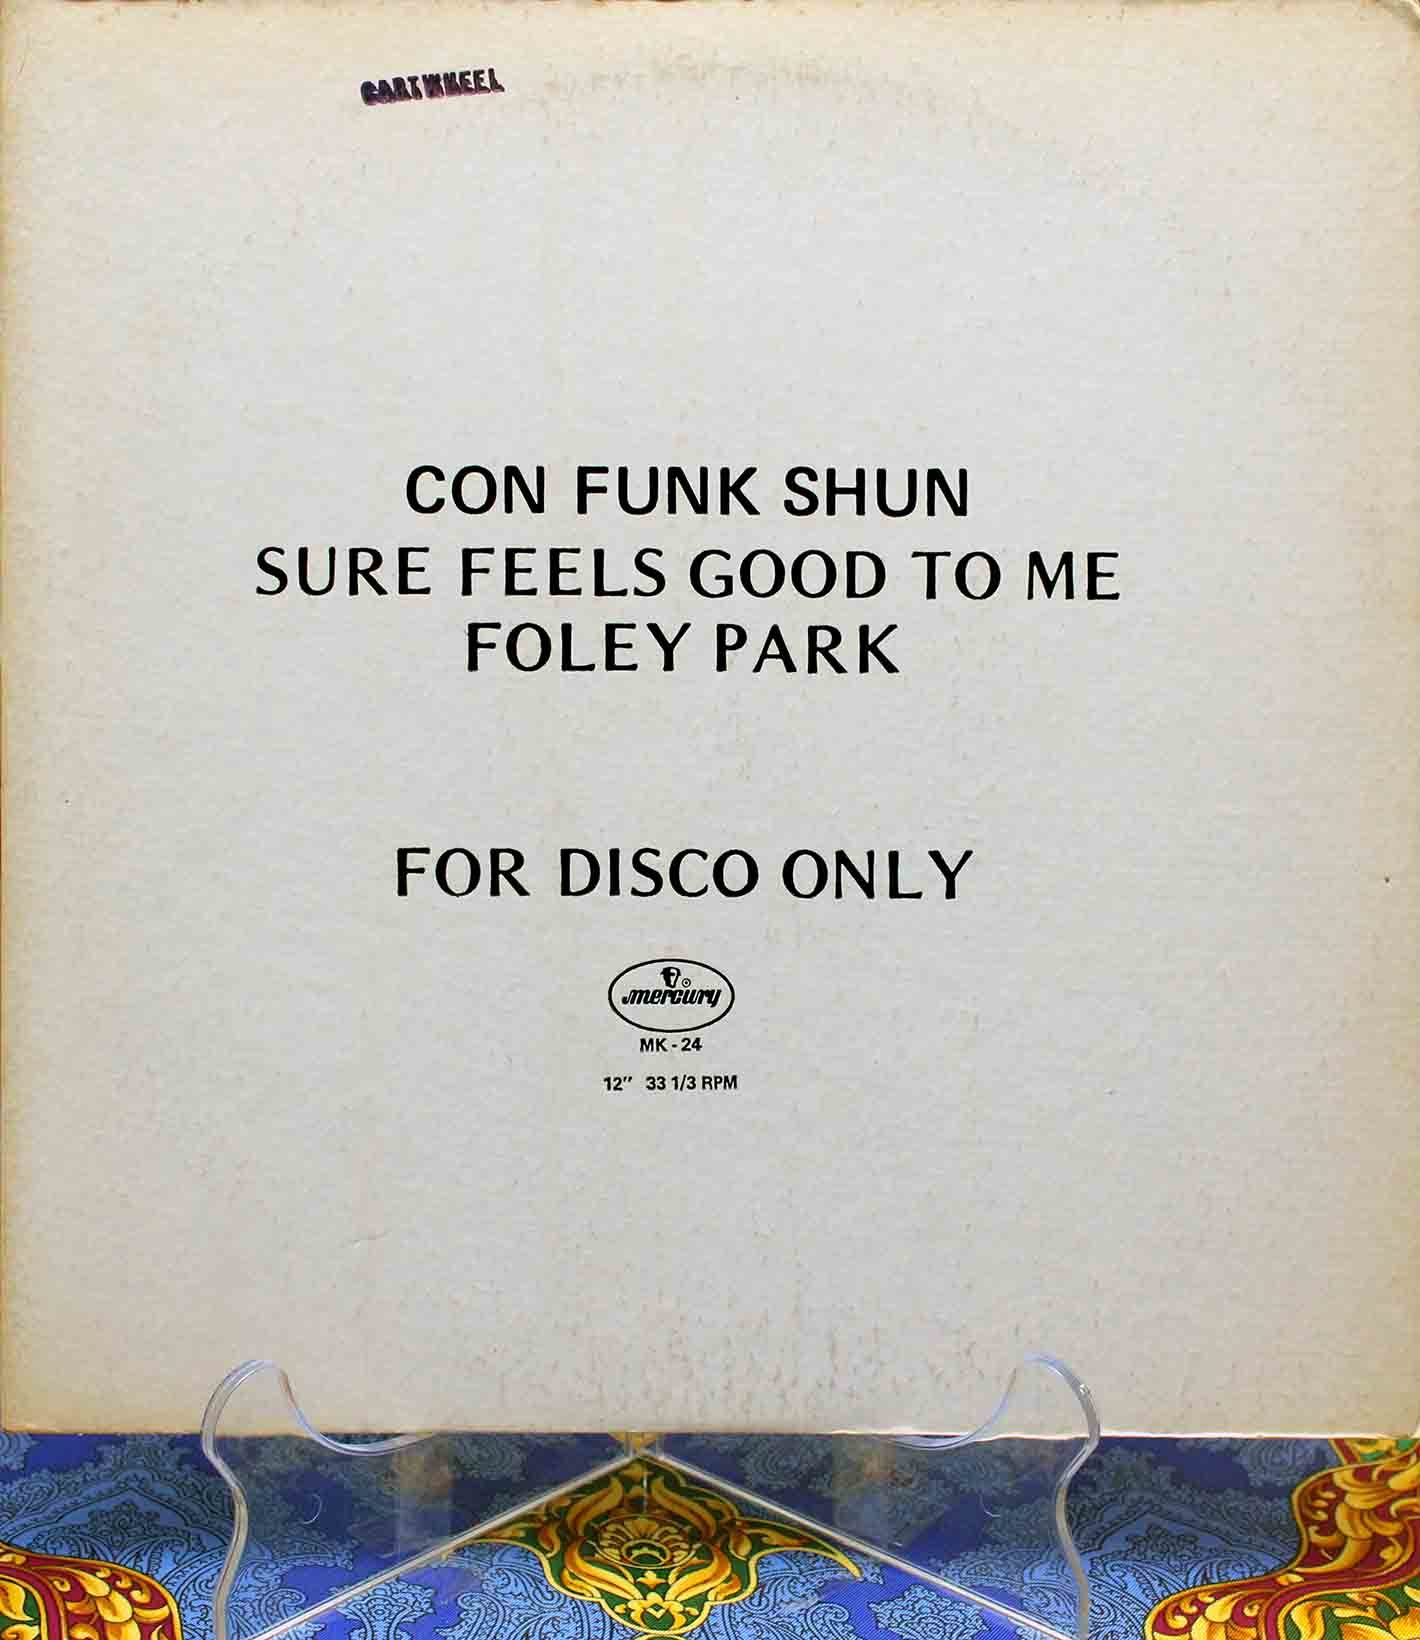 Con Funk Shun - Sure Feels Good To Me Foley Park 01